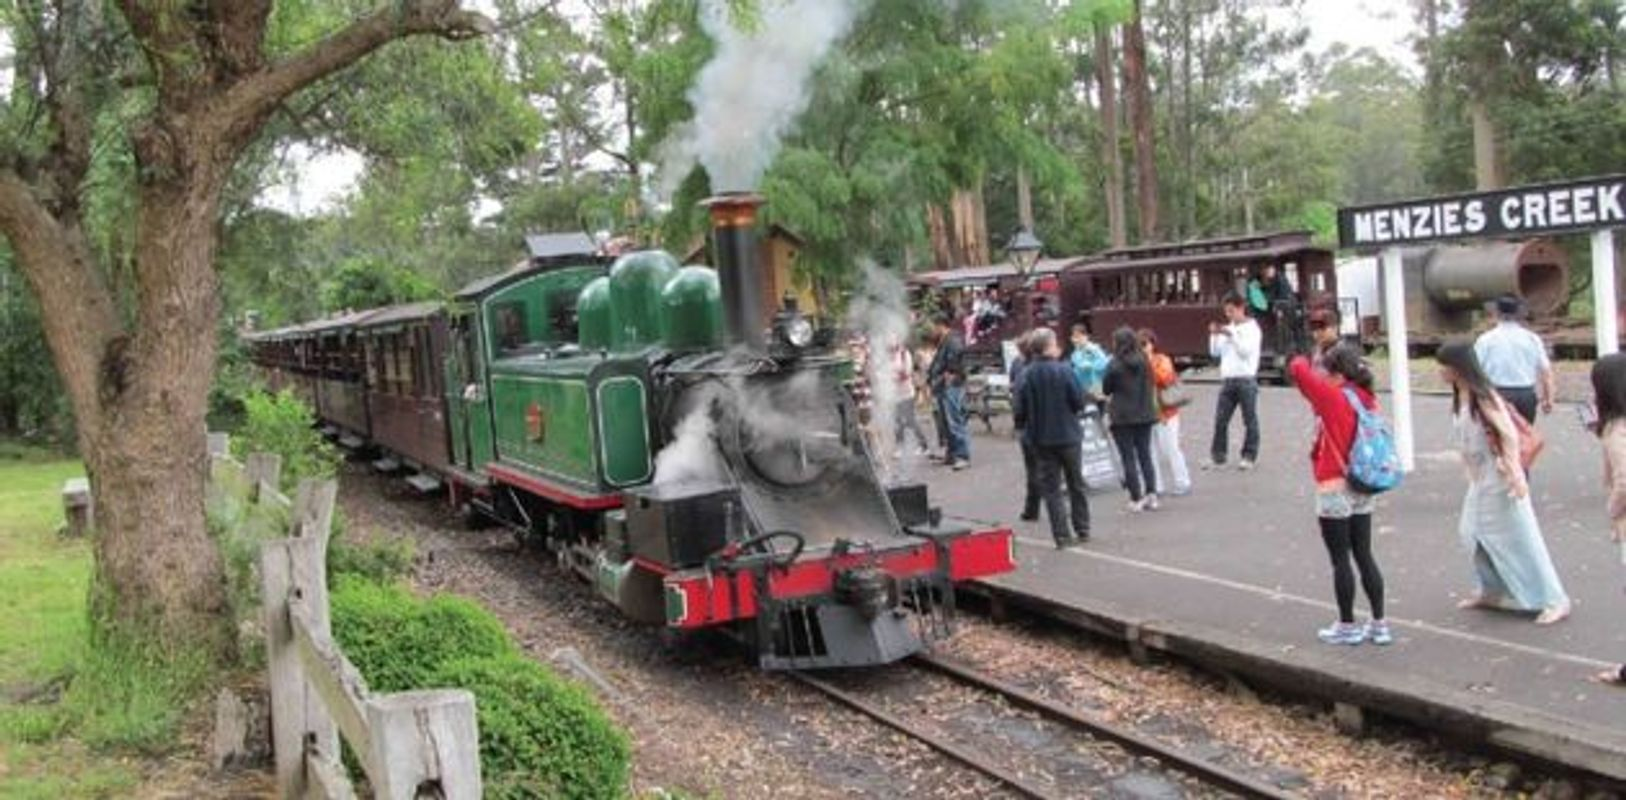 Puffing Billy at Menzies Creek